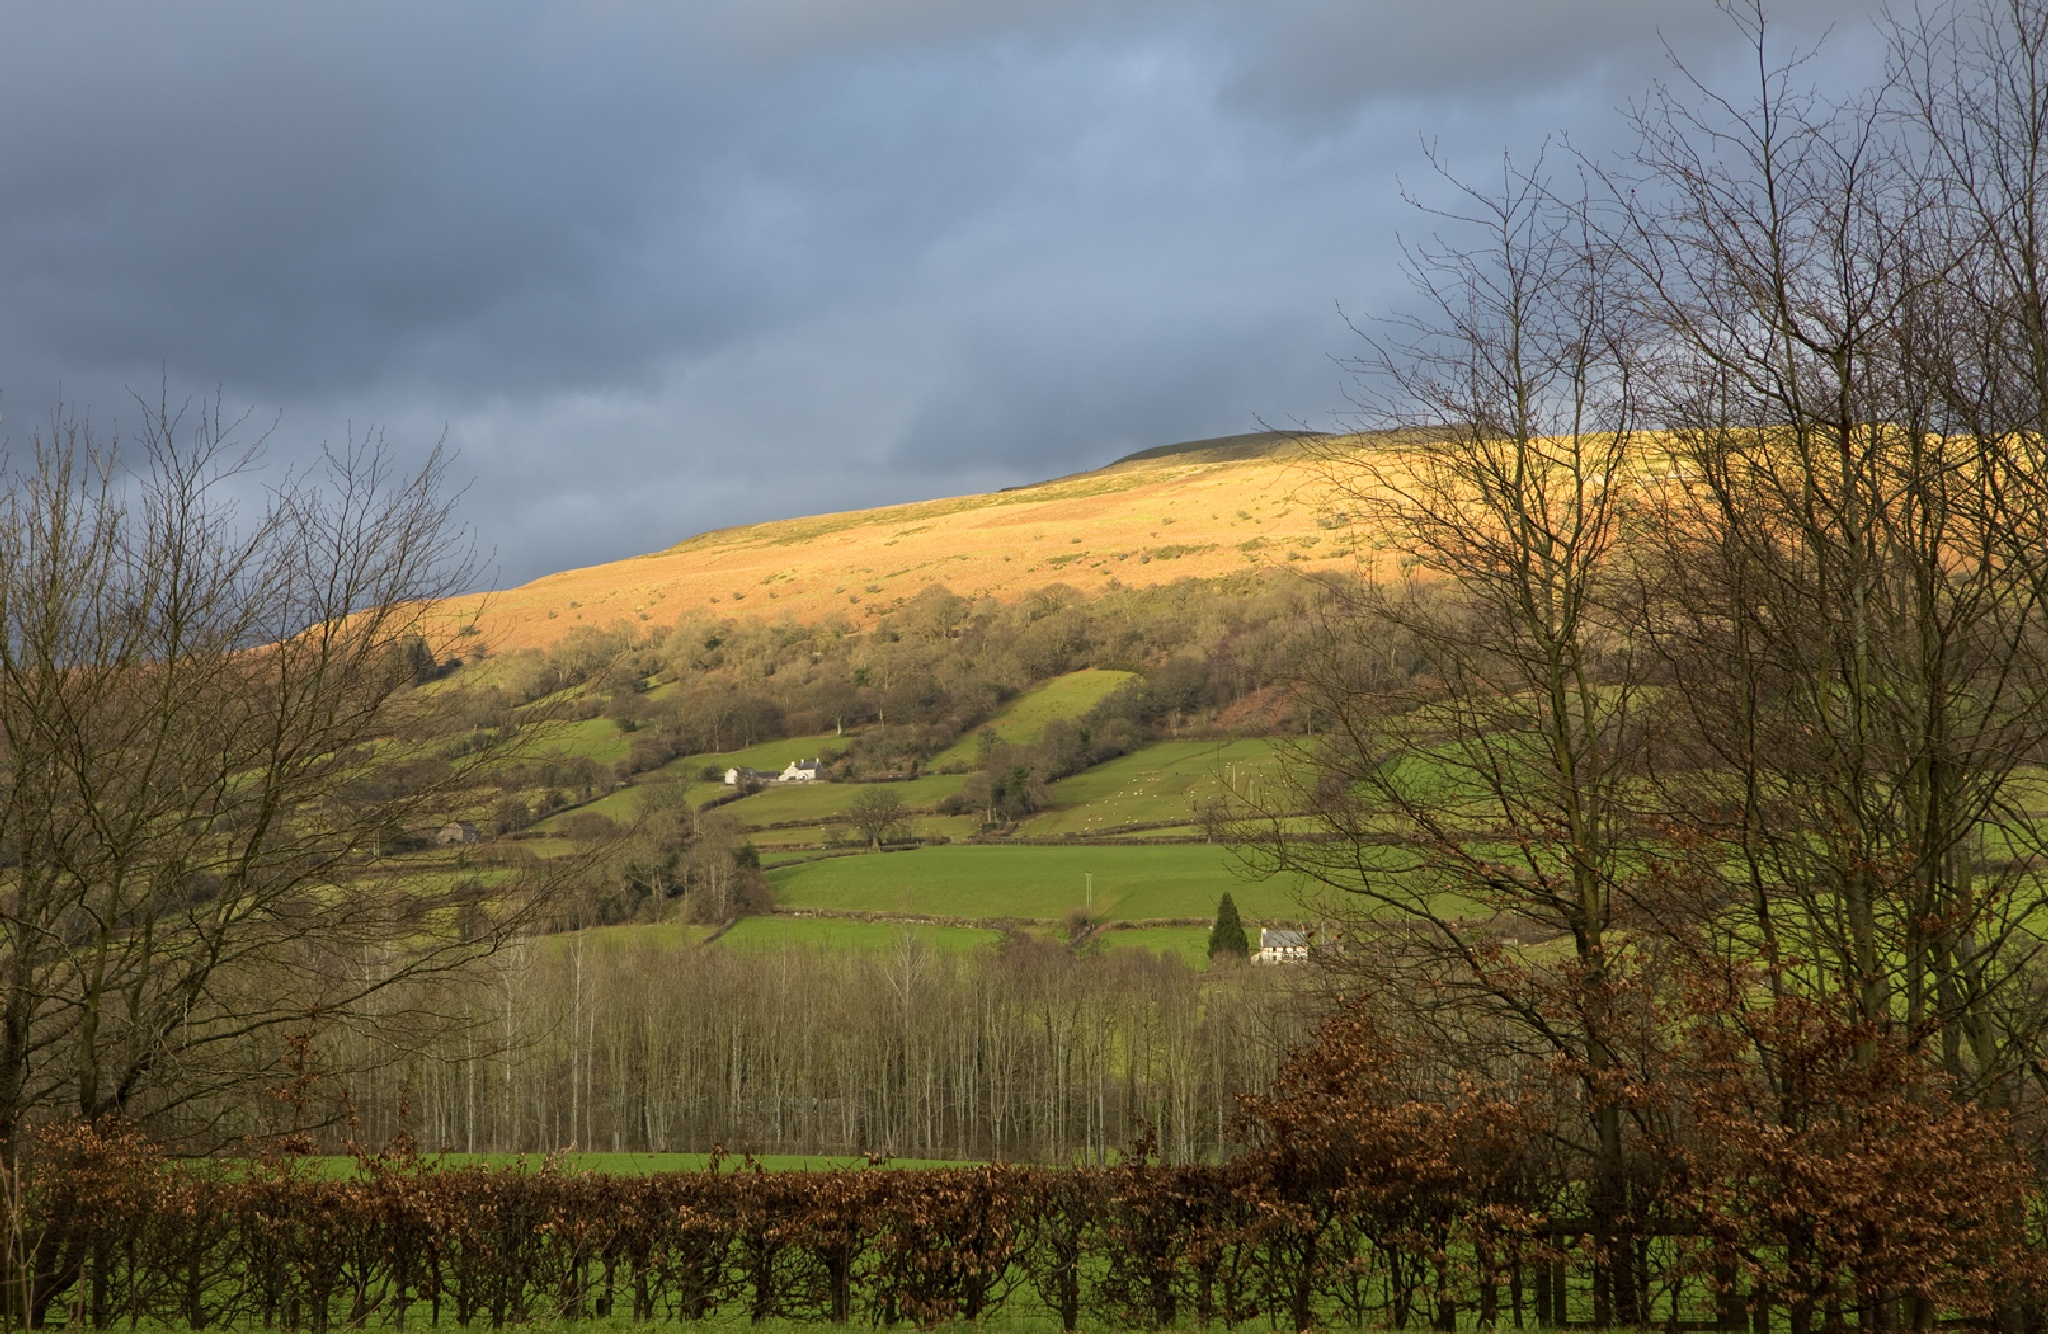 Final Light on the Hill by JaneCampbell21